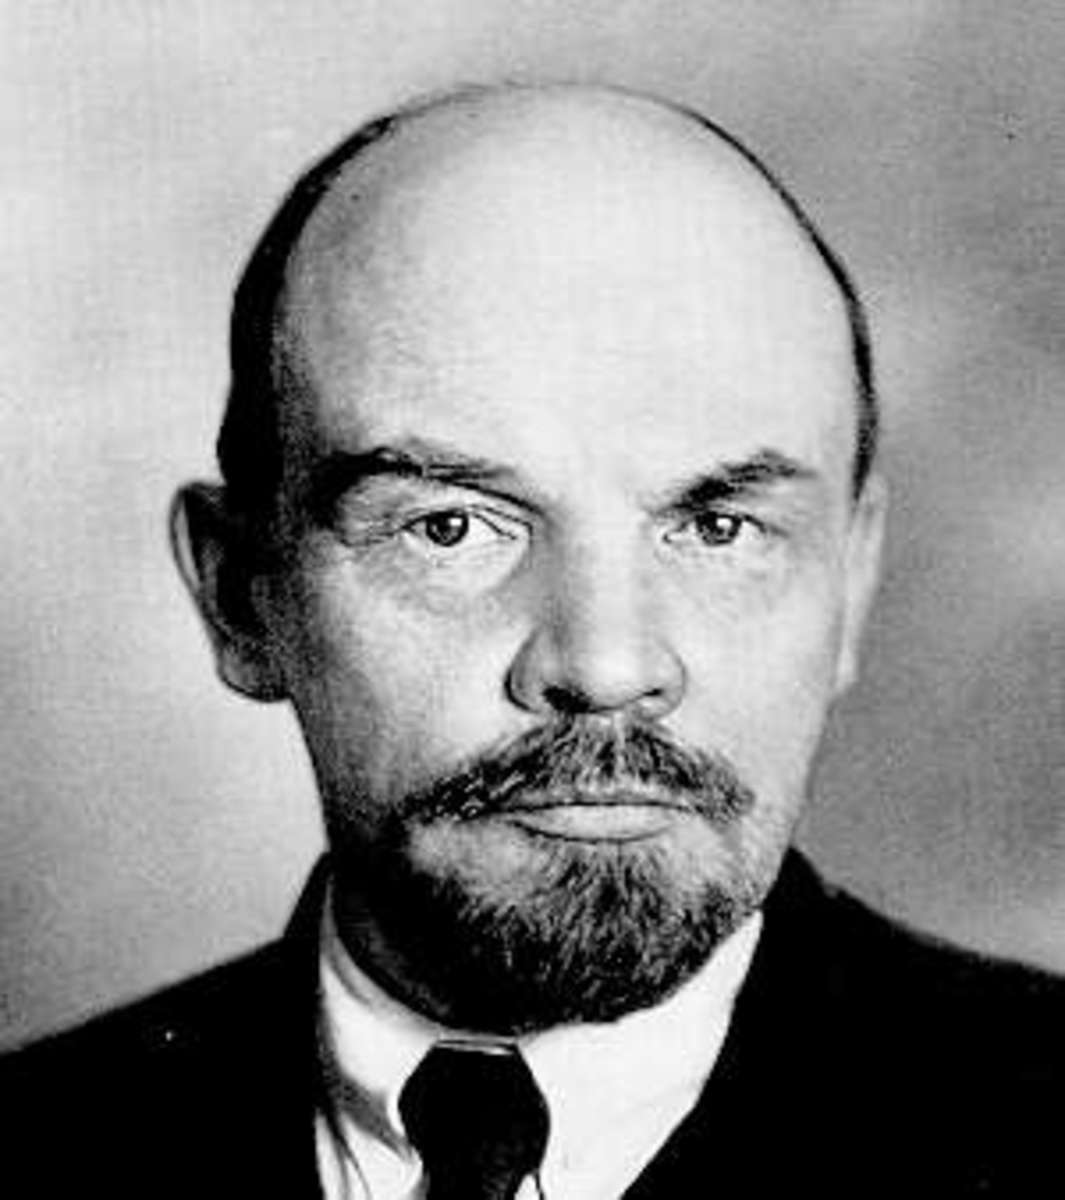 Pragmatism and Ideology: Soviet Foreign Policy Under Lenin